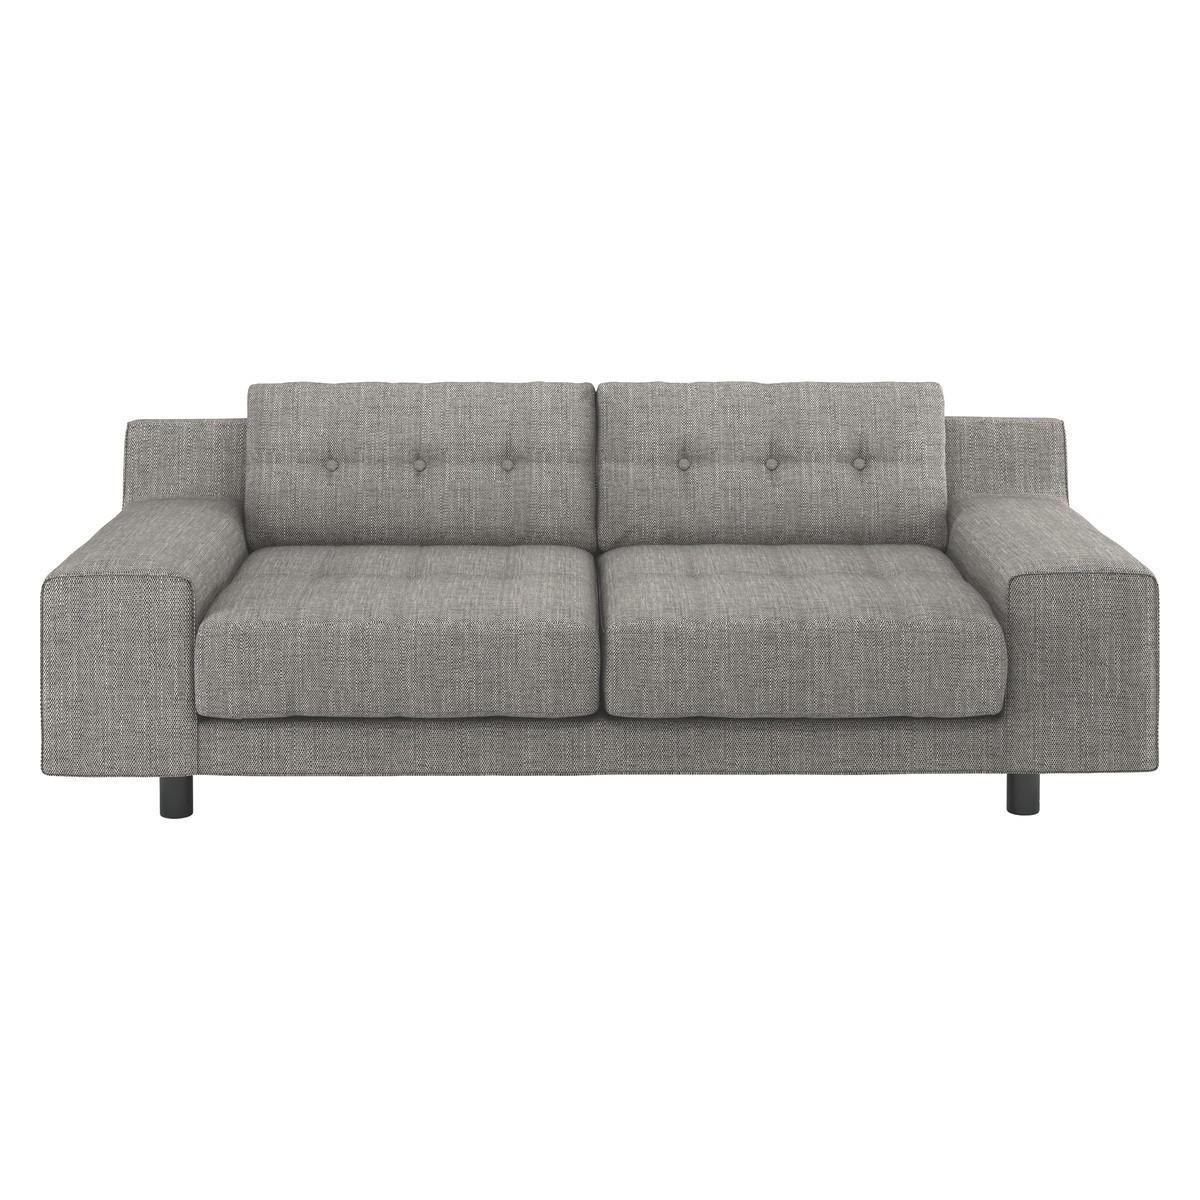 Small Design But Big Style, A Two Seater Sofa – Tcg Within Two Seater Sofas (Image 17 of 20)